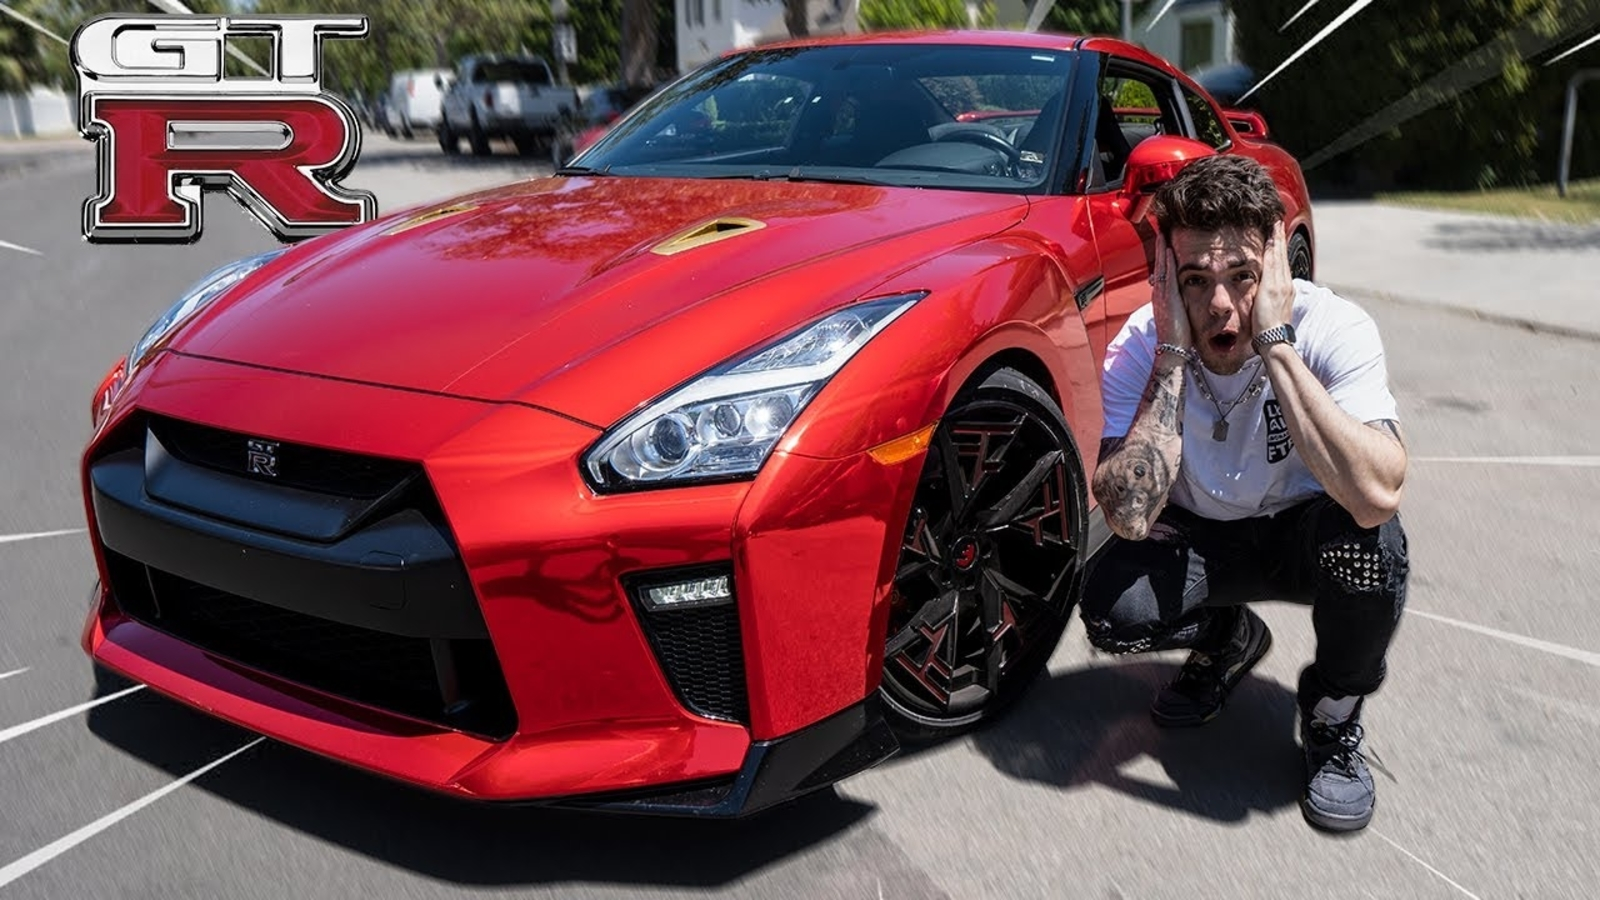 FaZe adapt next to his new custom GTR